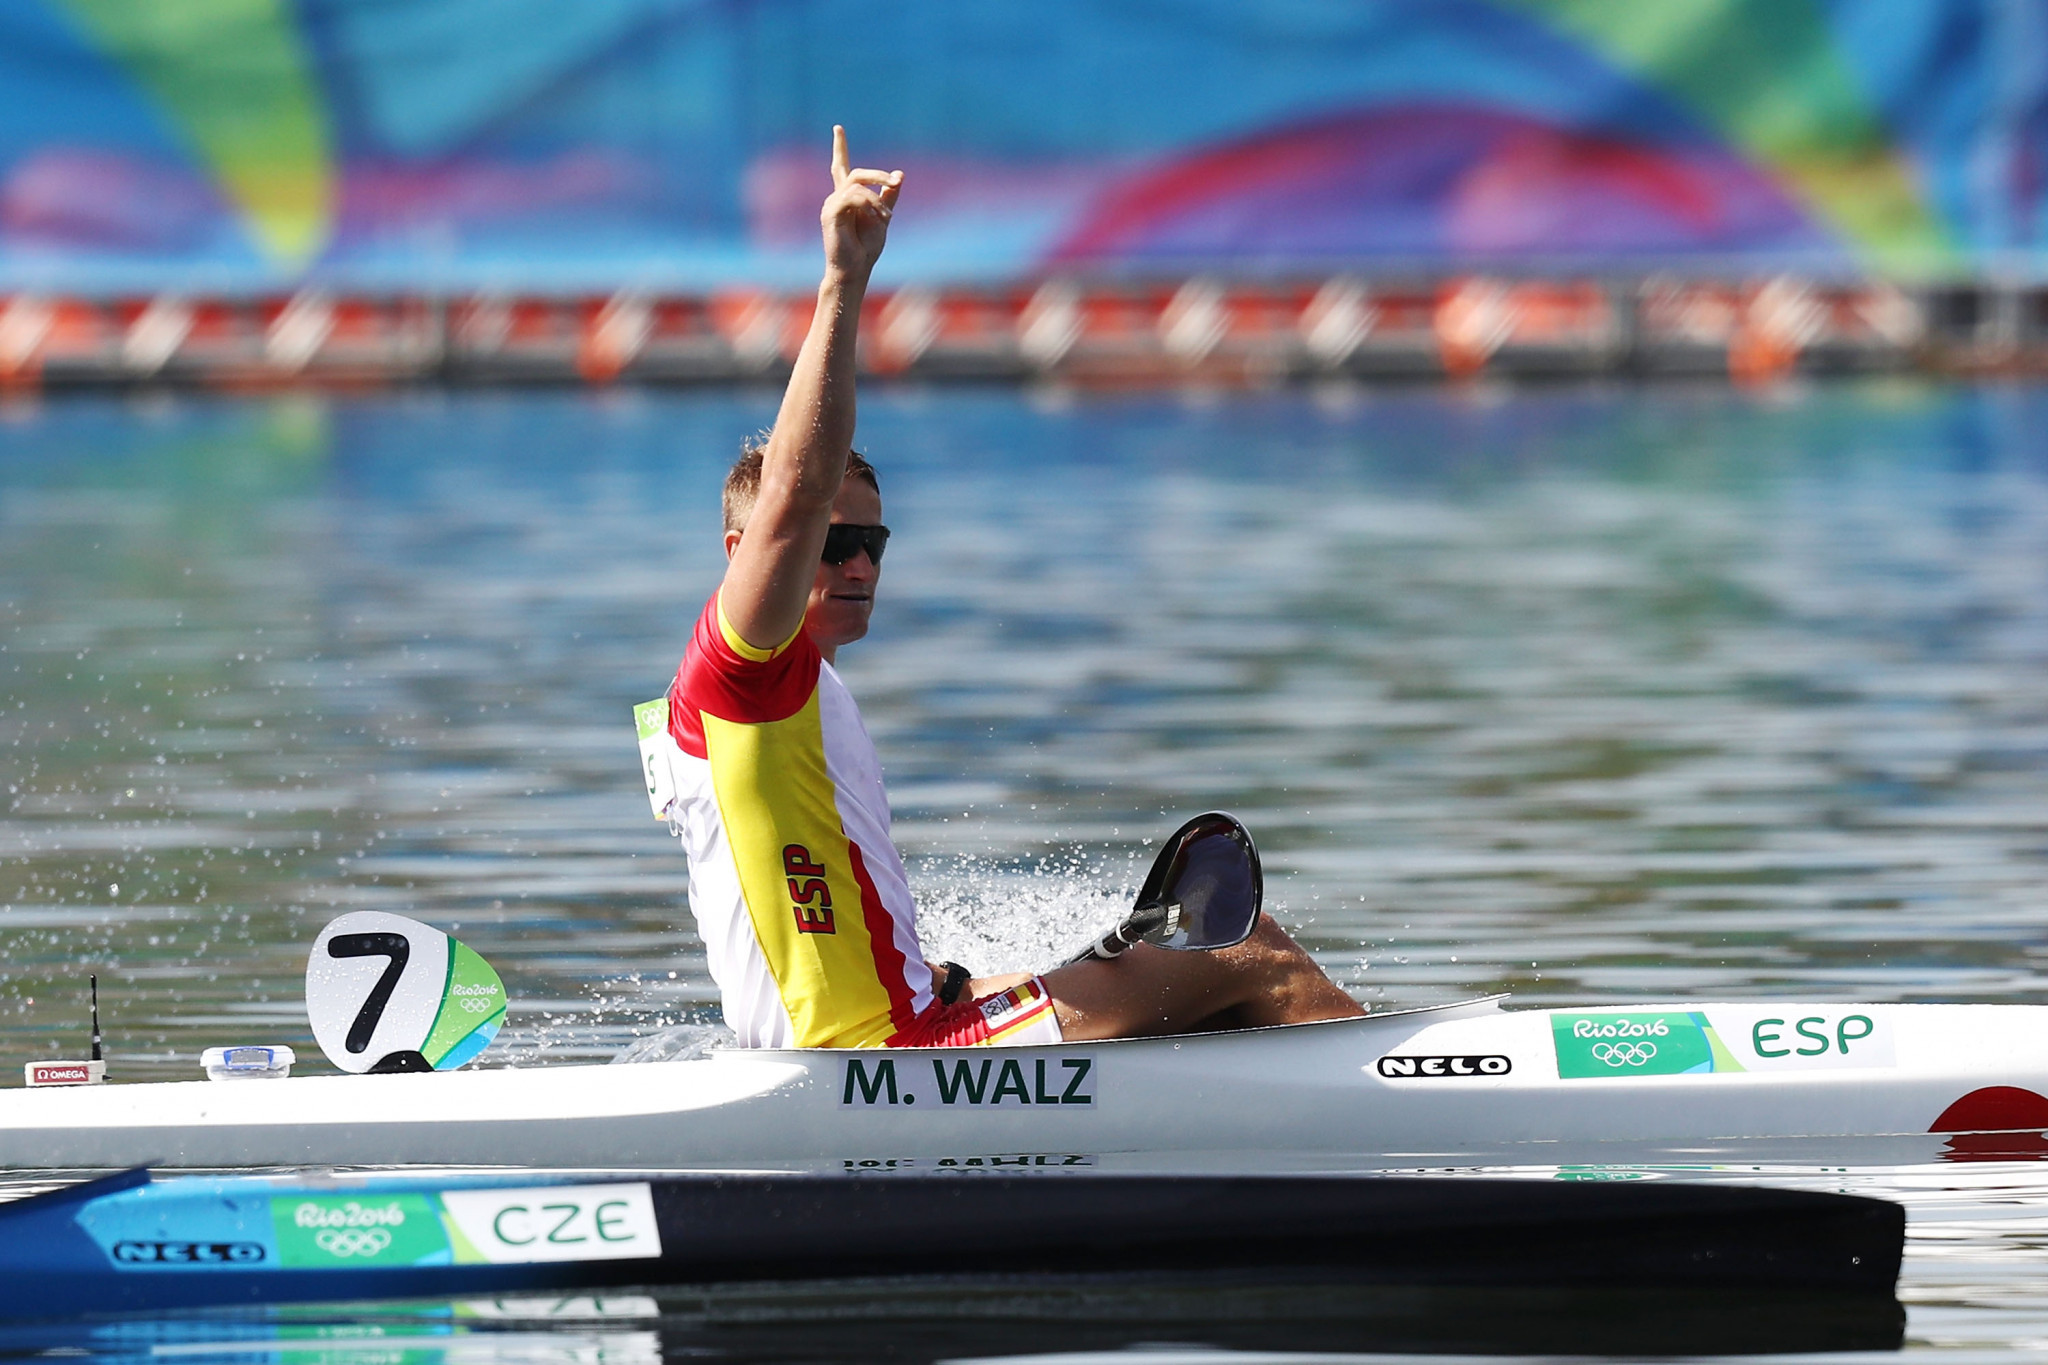 Spain win C2 and K2 races at Canoe Sprint World Cup in Szeged